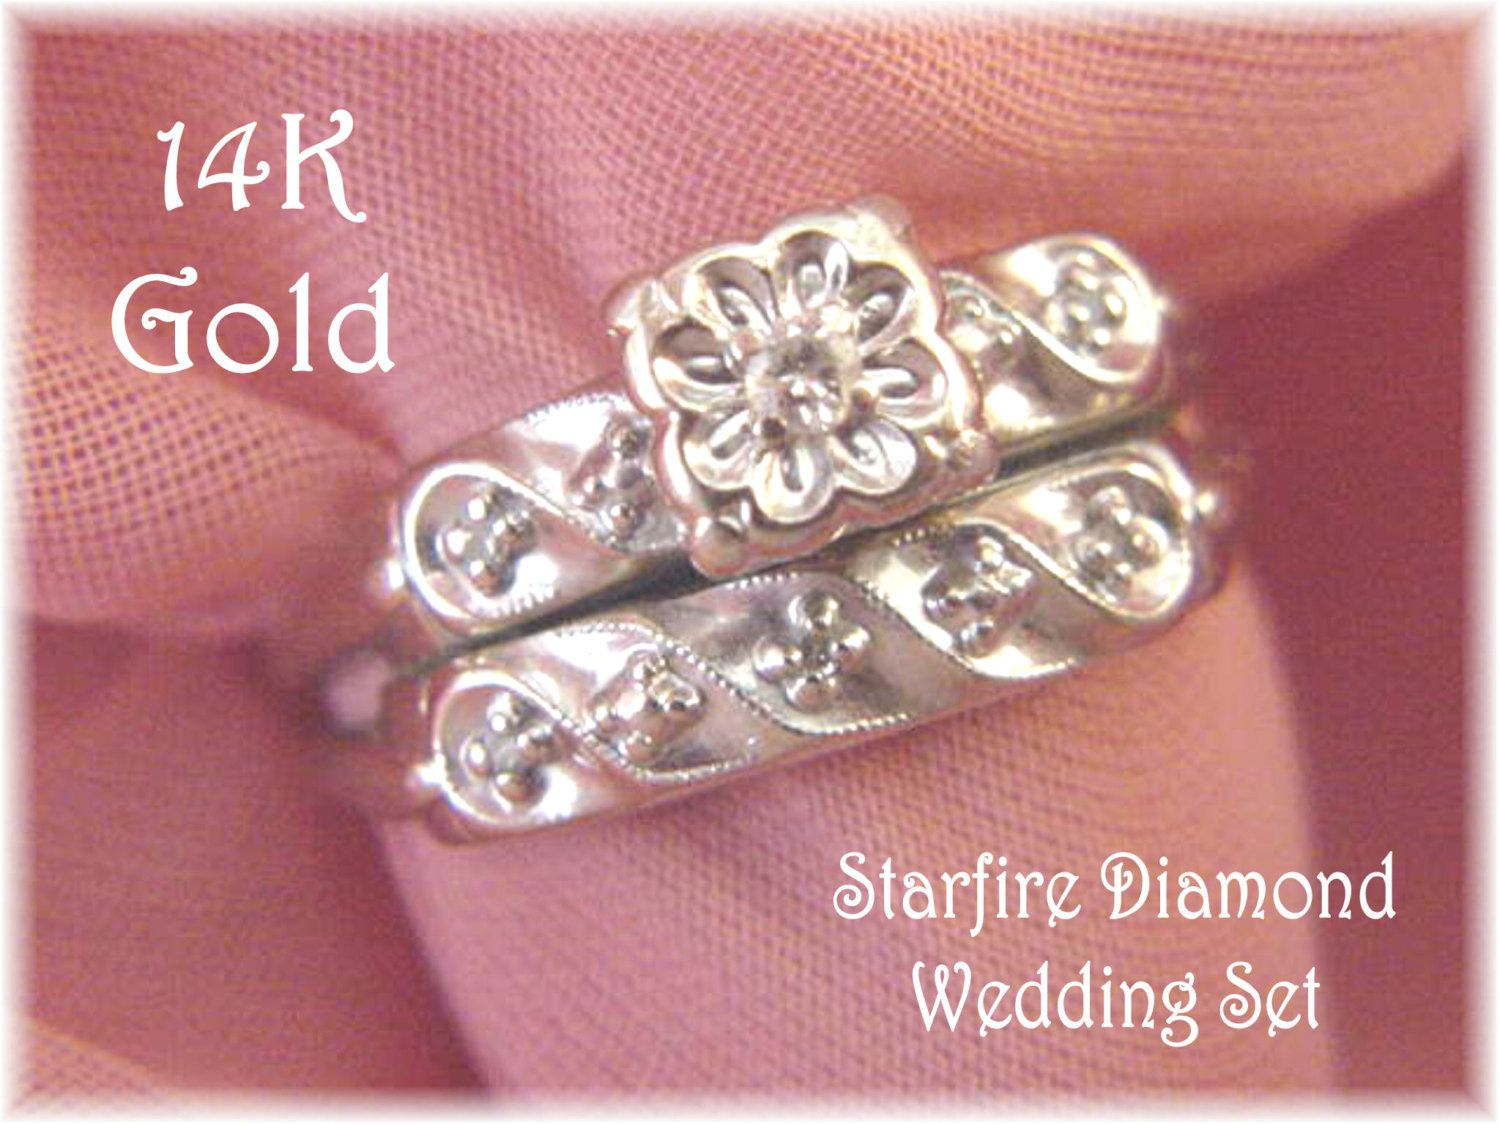 14K White Gold - Starfire Diamond Wedding Ring Set - Antique Vintage ...